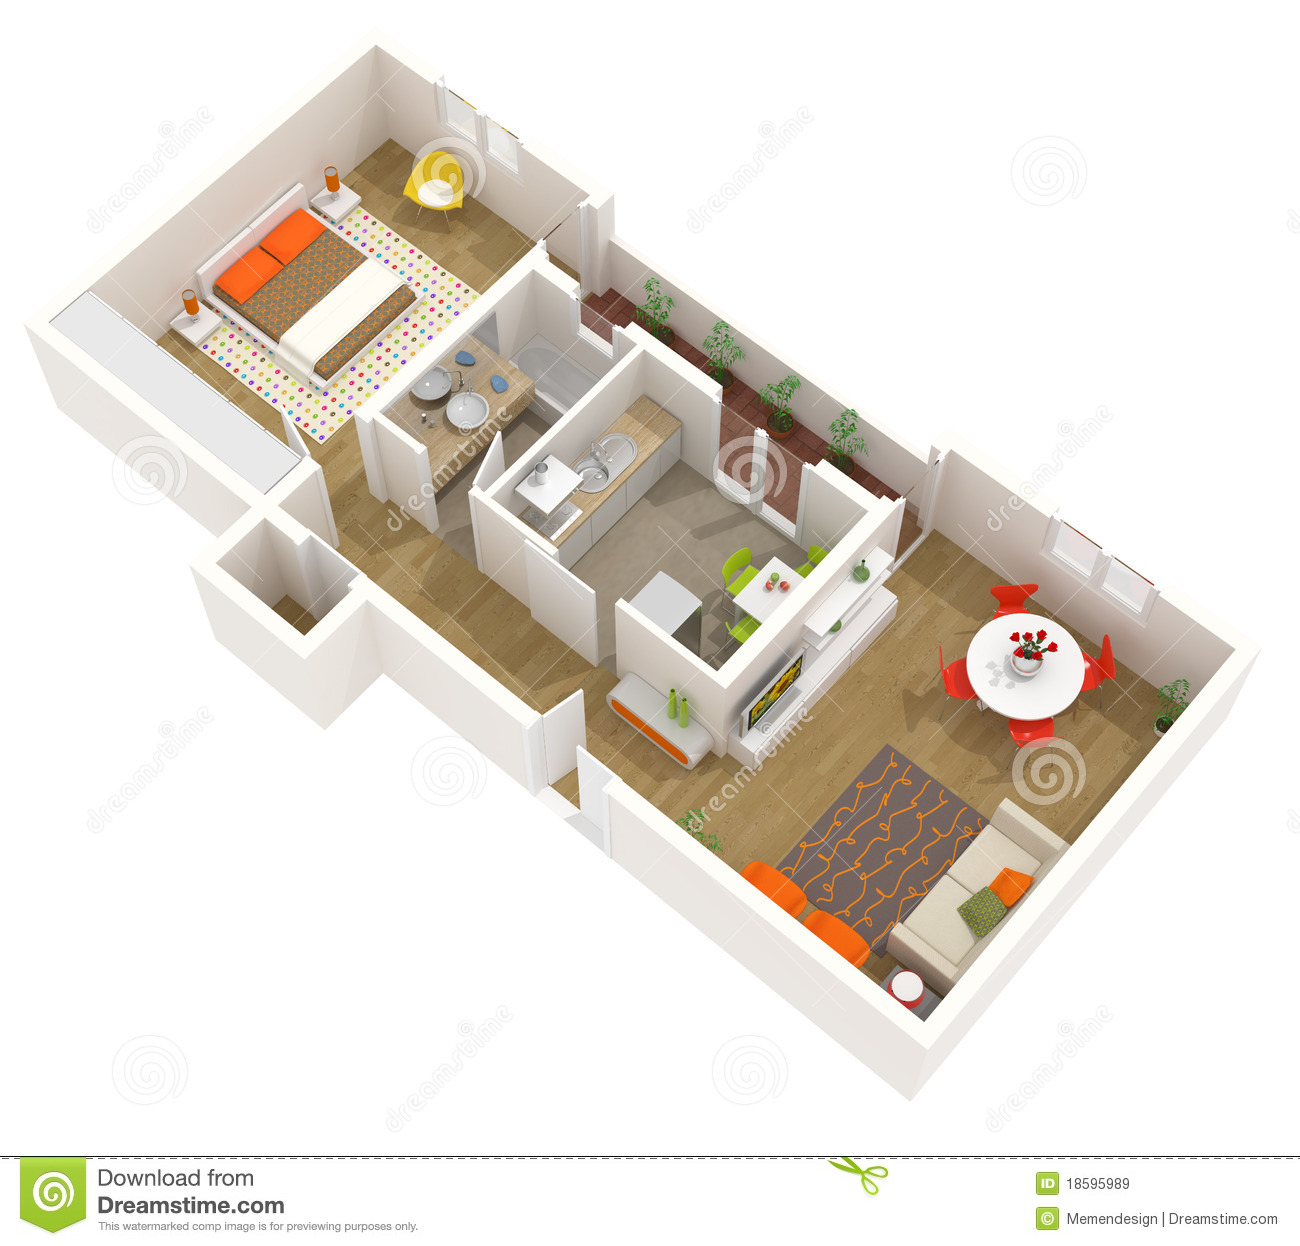 Apartment interior design 3d floor plan stock for 3d interior design online